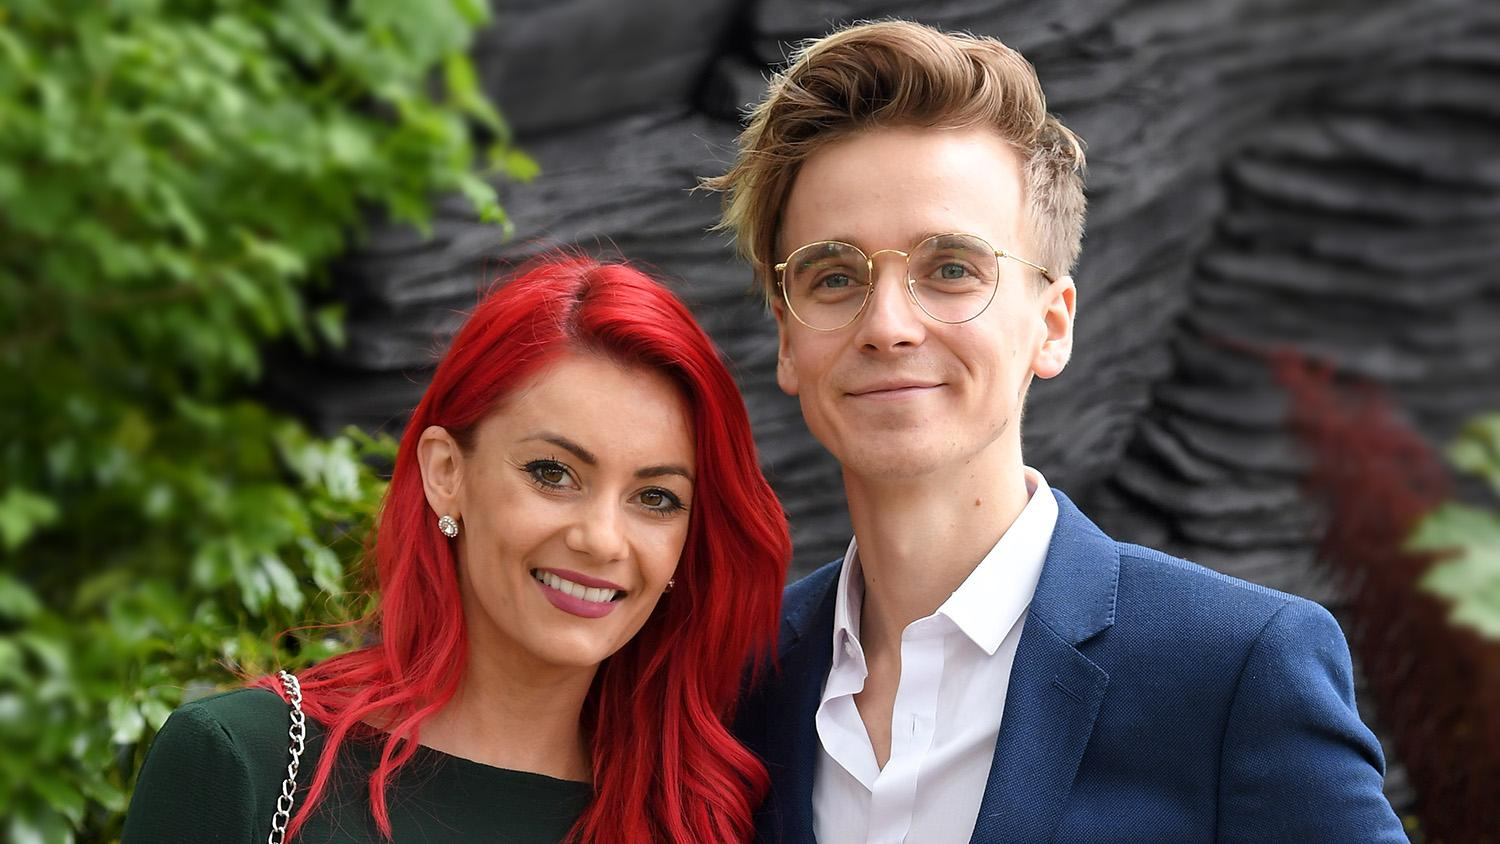 Strictly stars Joe and Dianne move in together